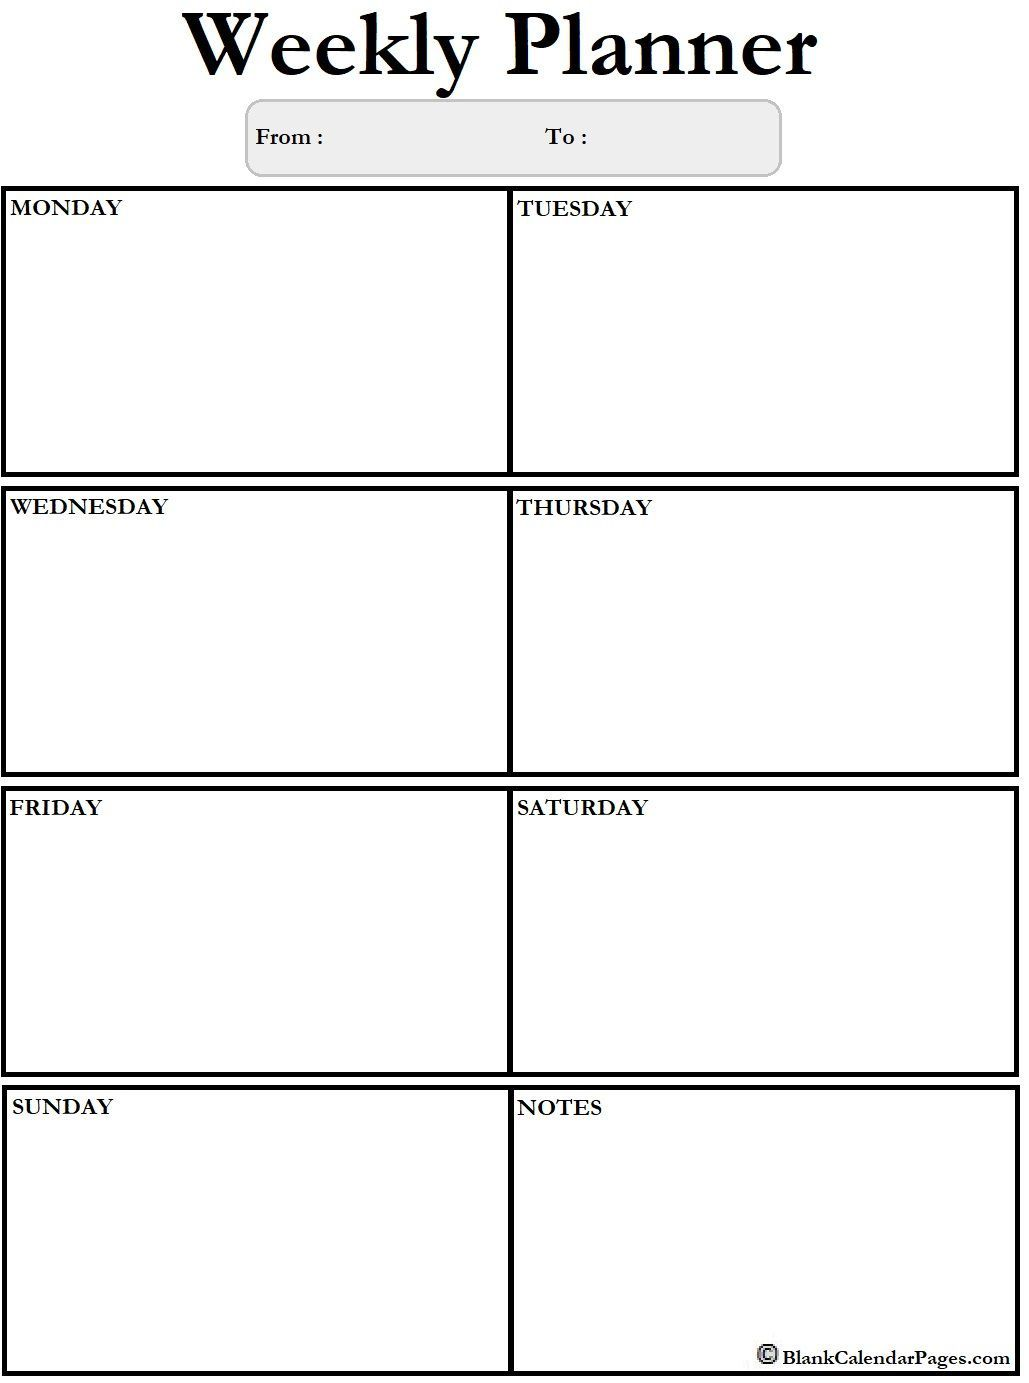 002 Rare Blank Weekly Calendar Template Design  Word Microsoft 2019Full